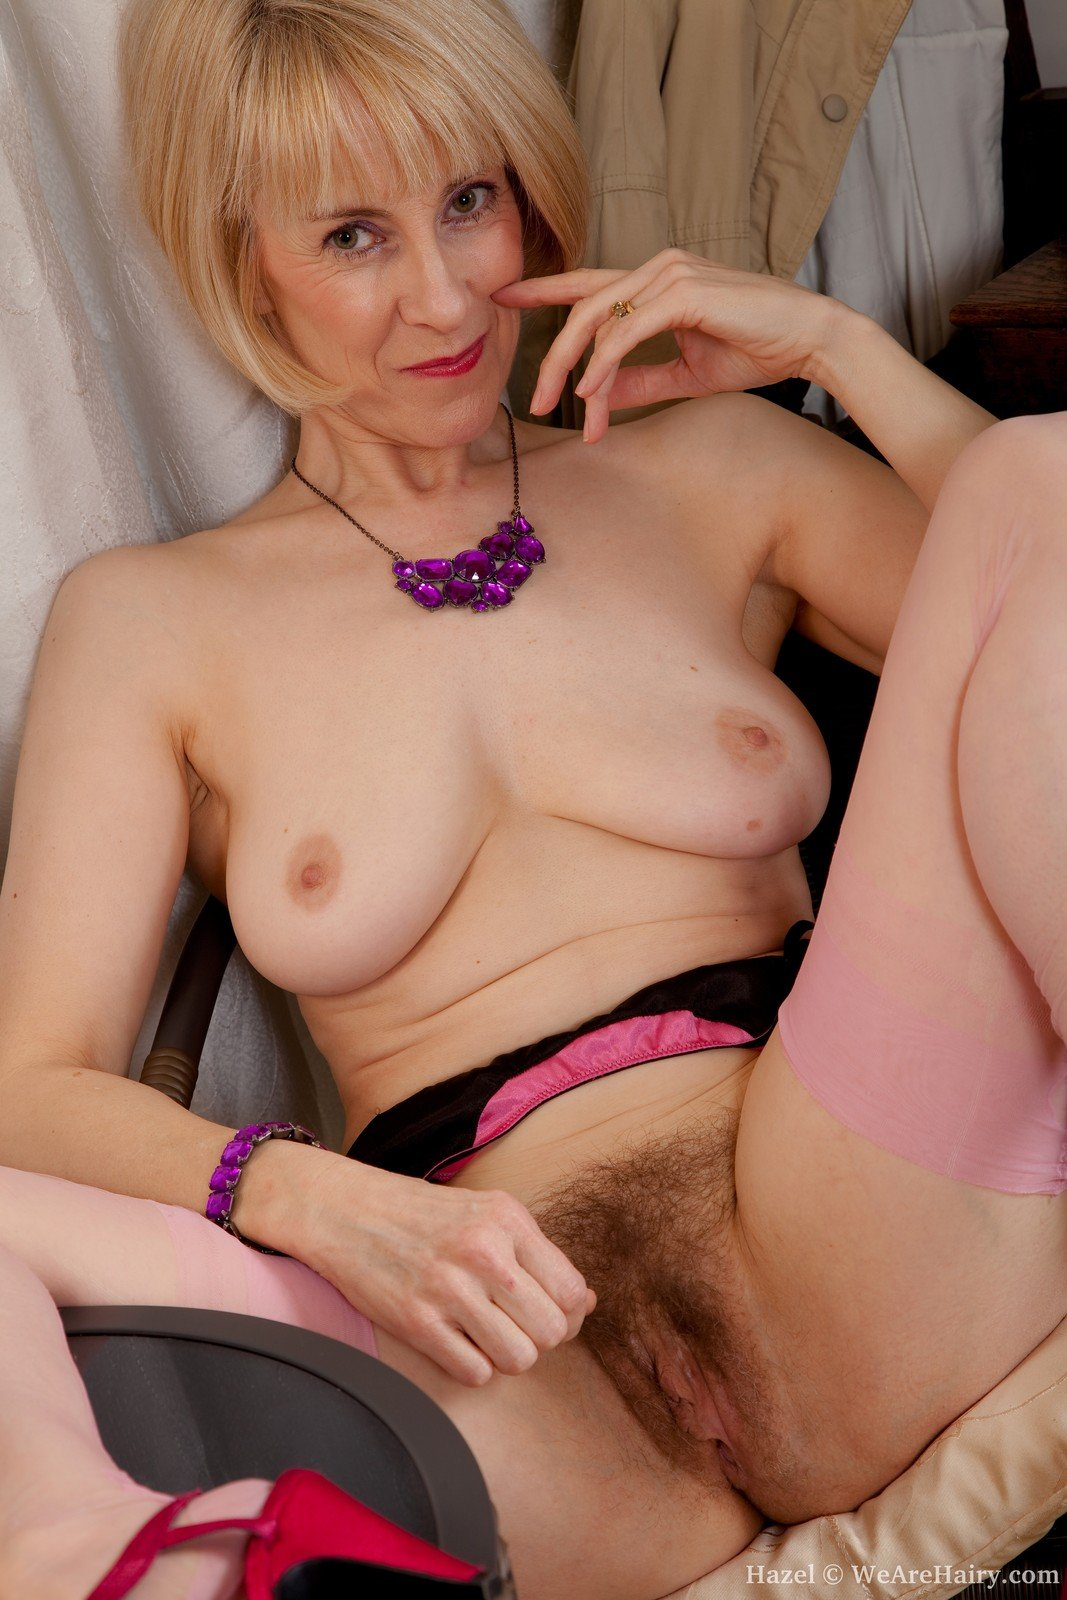 Mature naked women over 0 #1